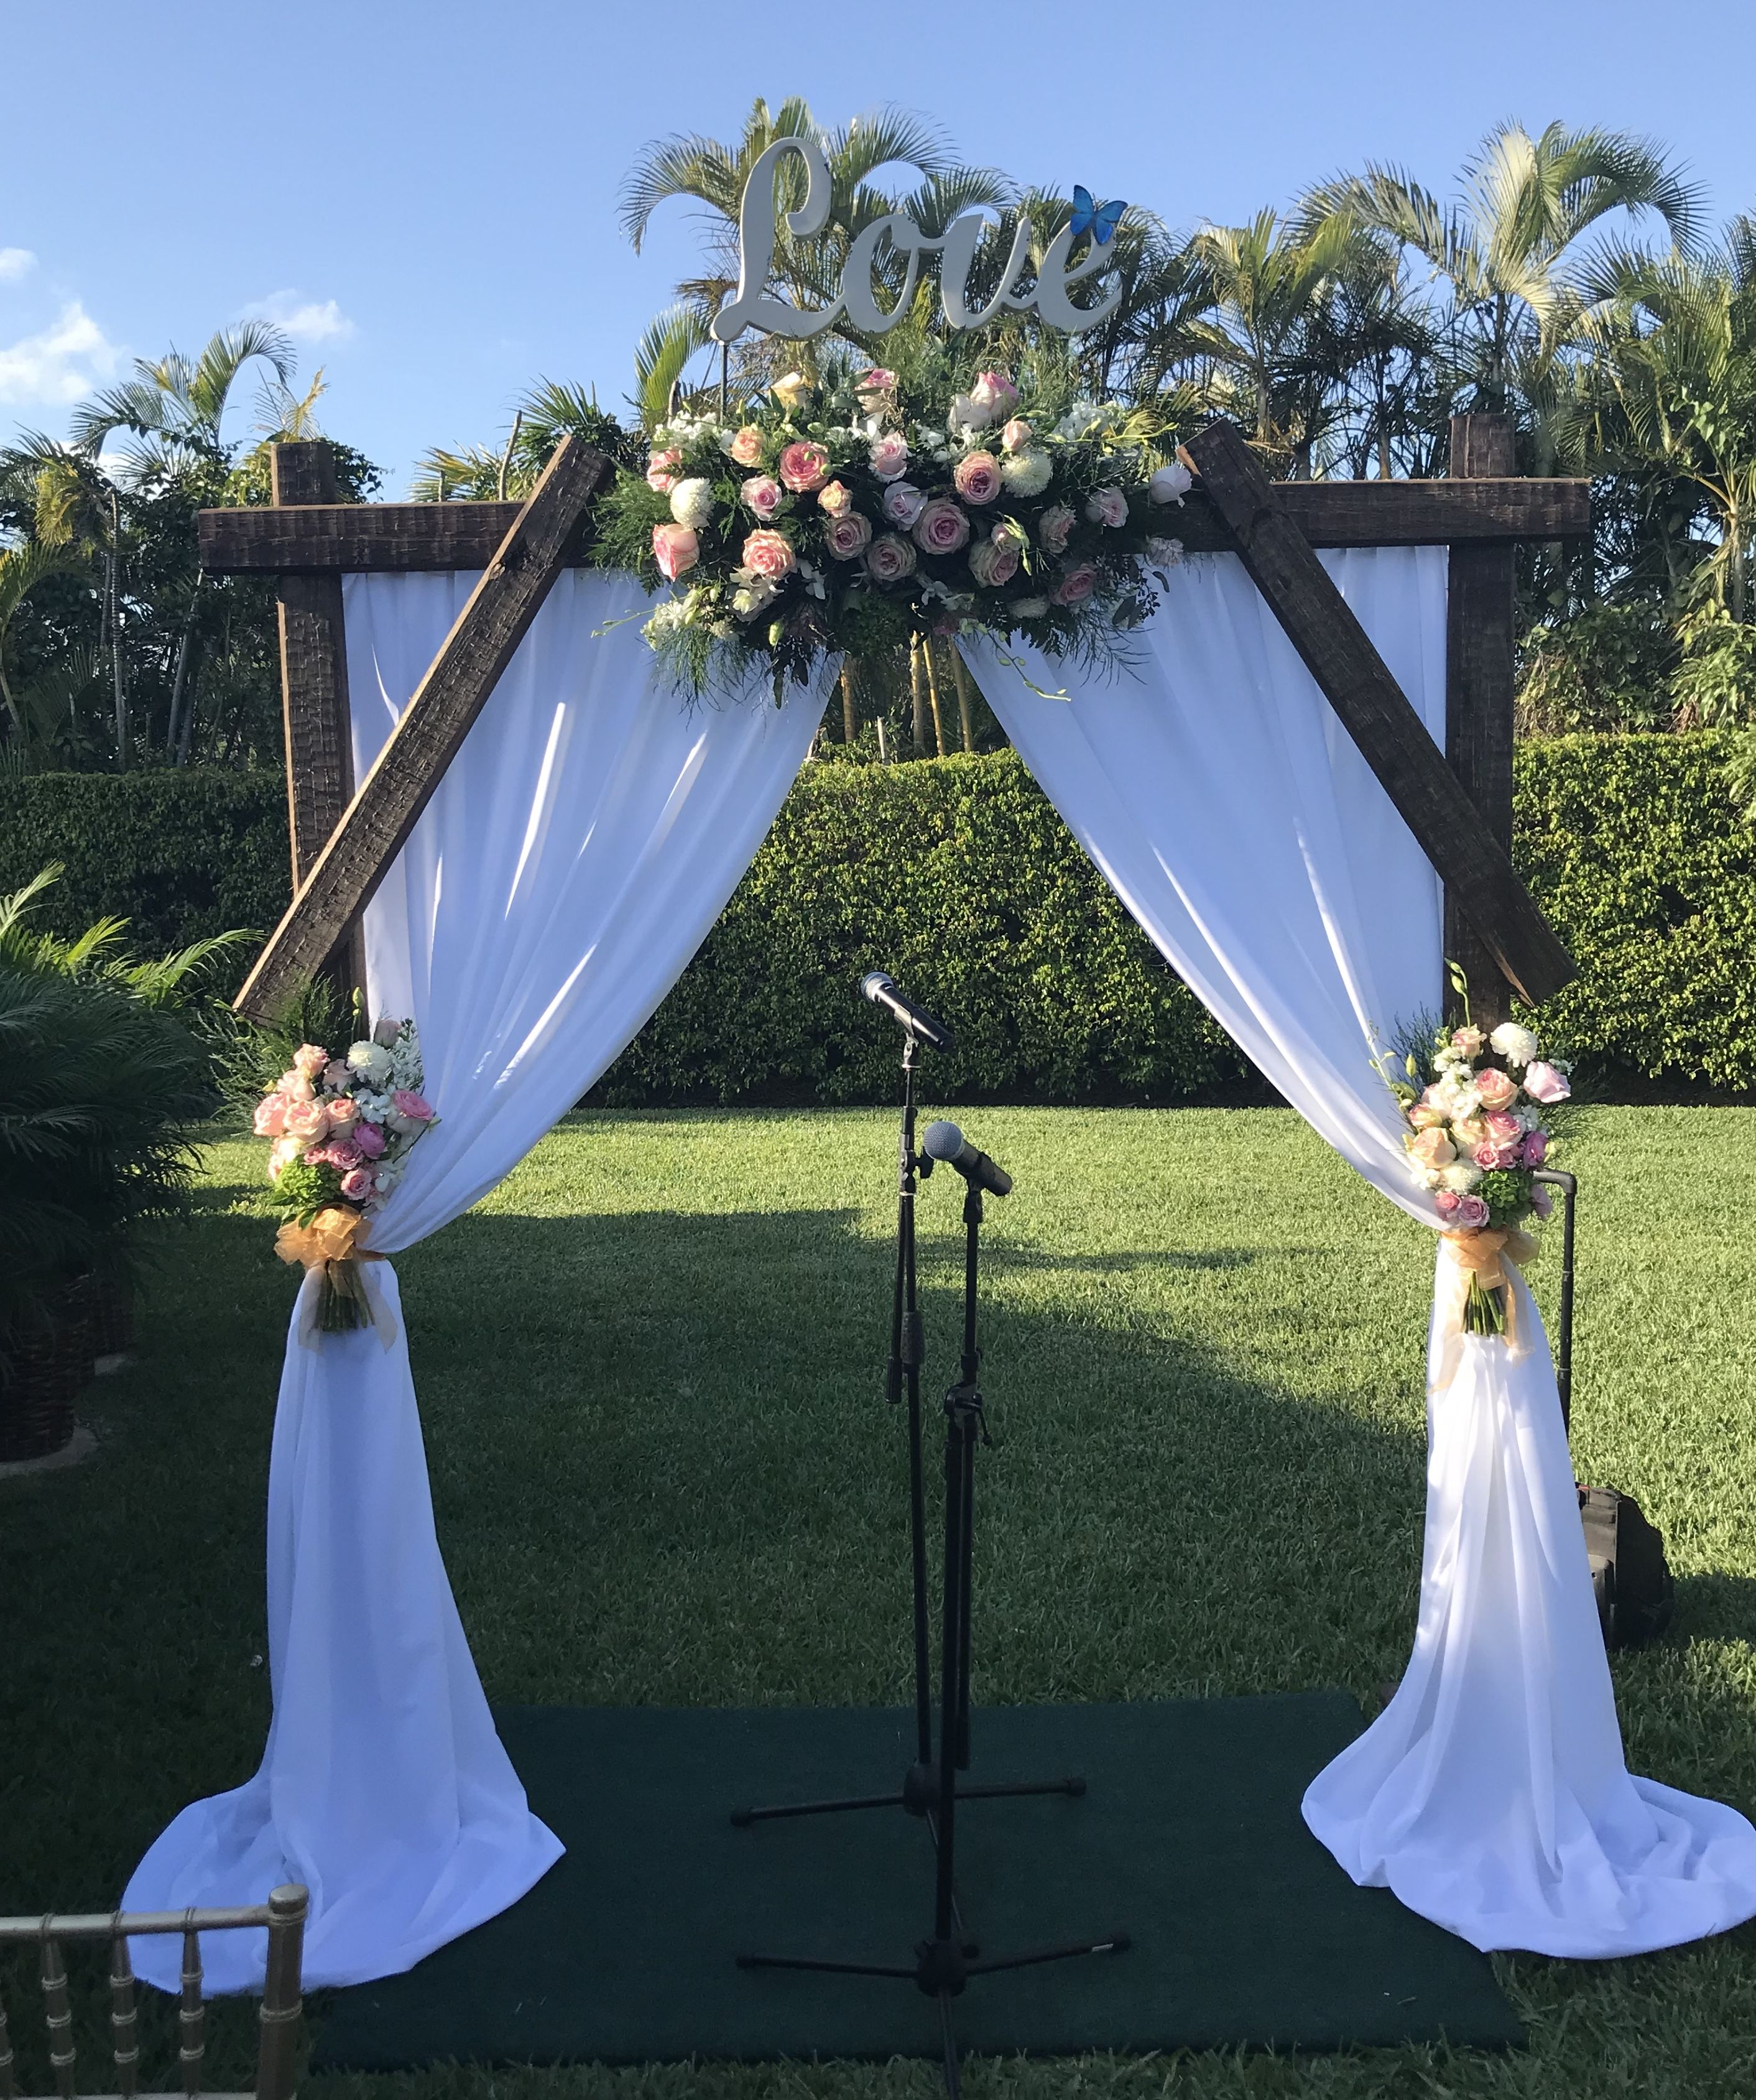 Outdoor Wedding Arch: DIY Wedding Arch Made From Landscape Timbers In 2019